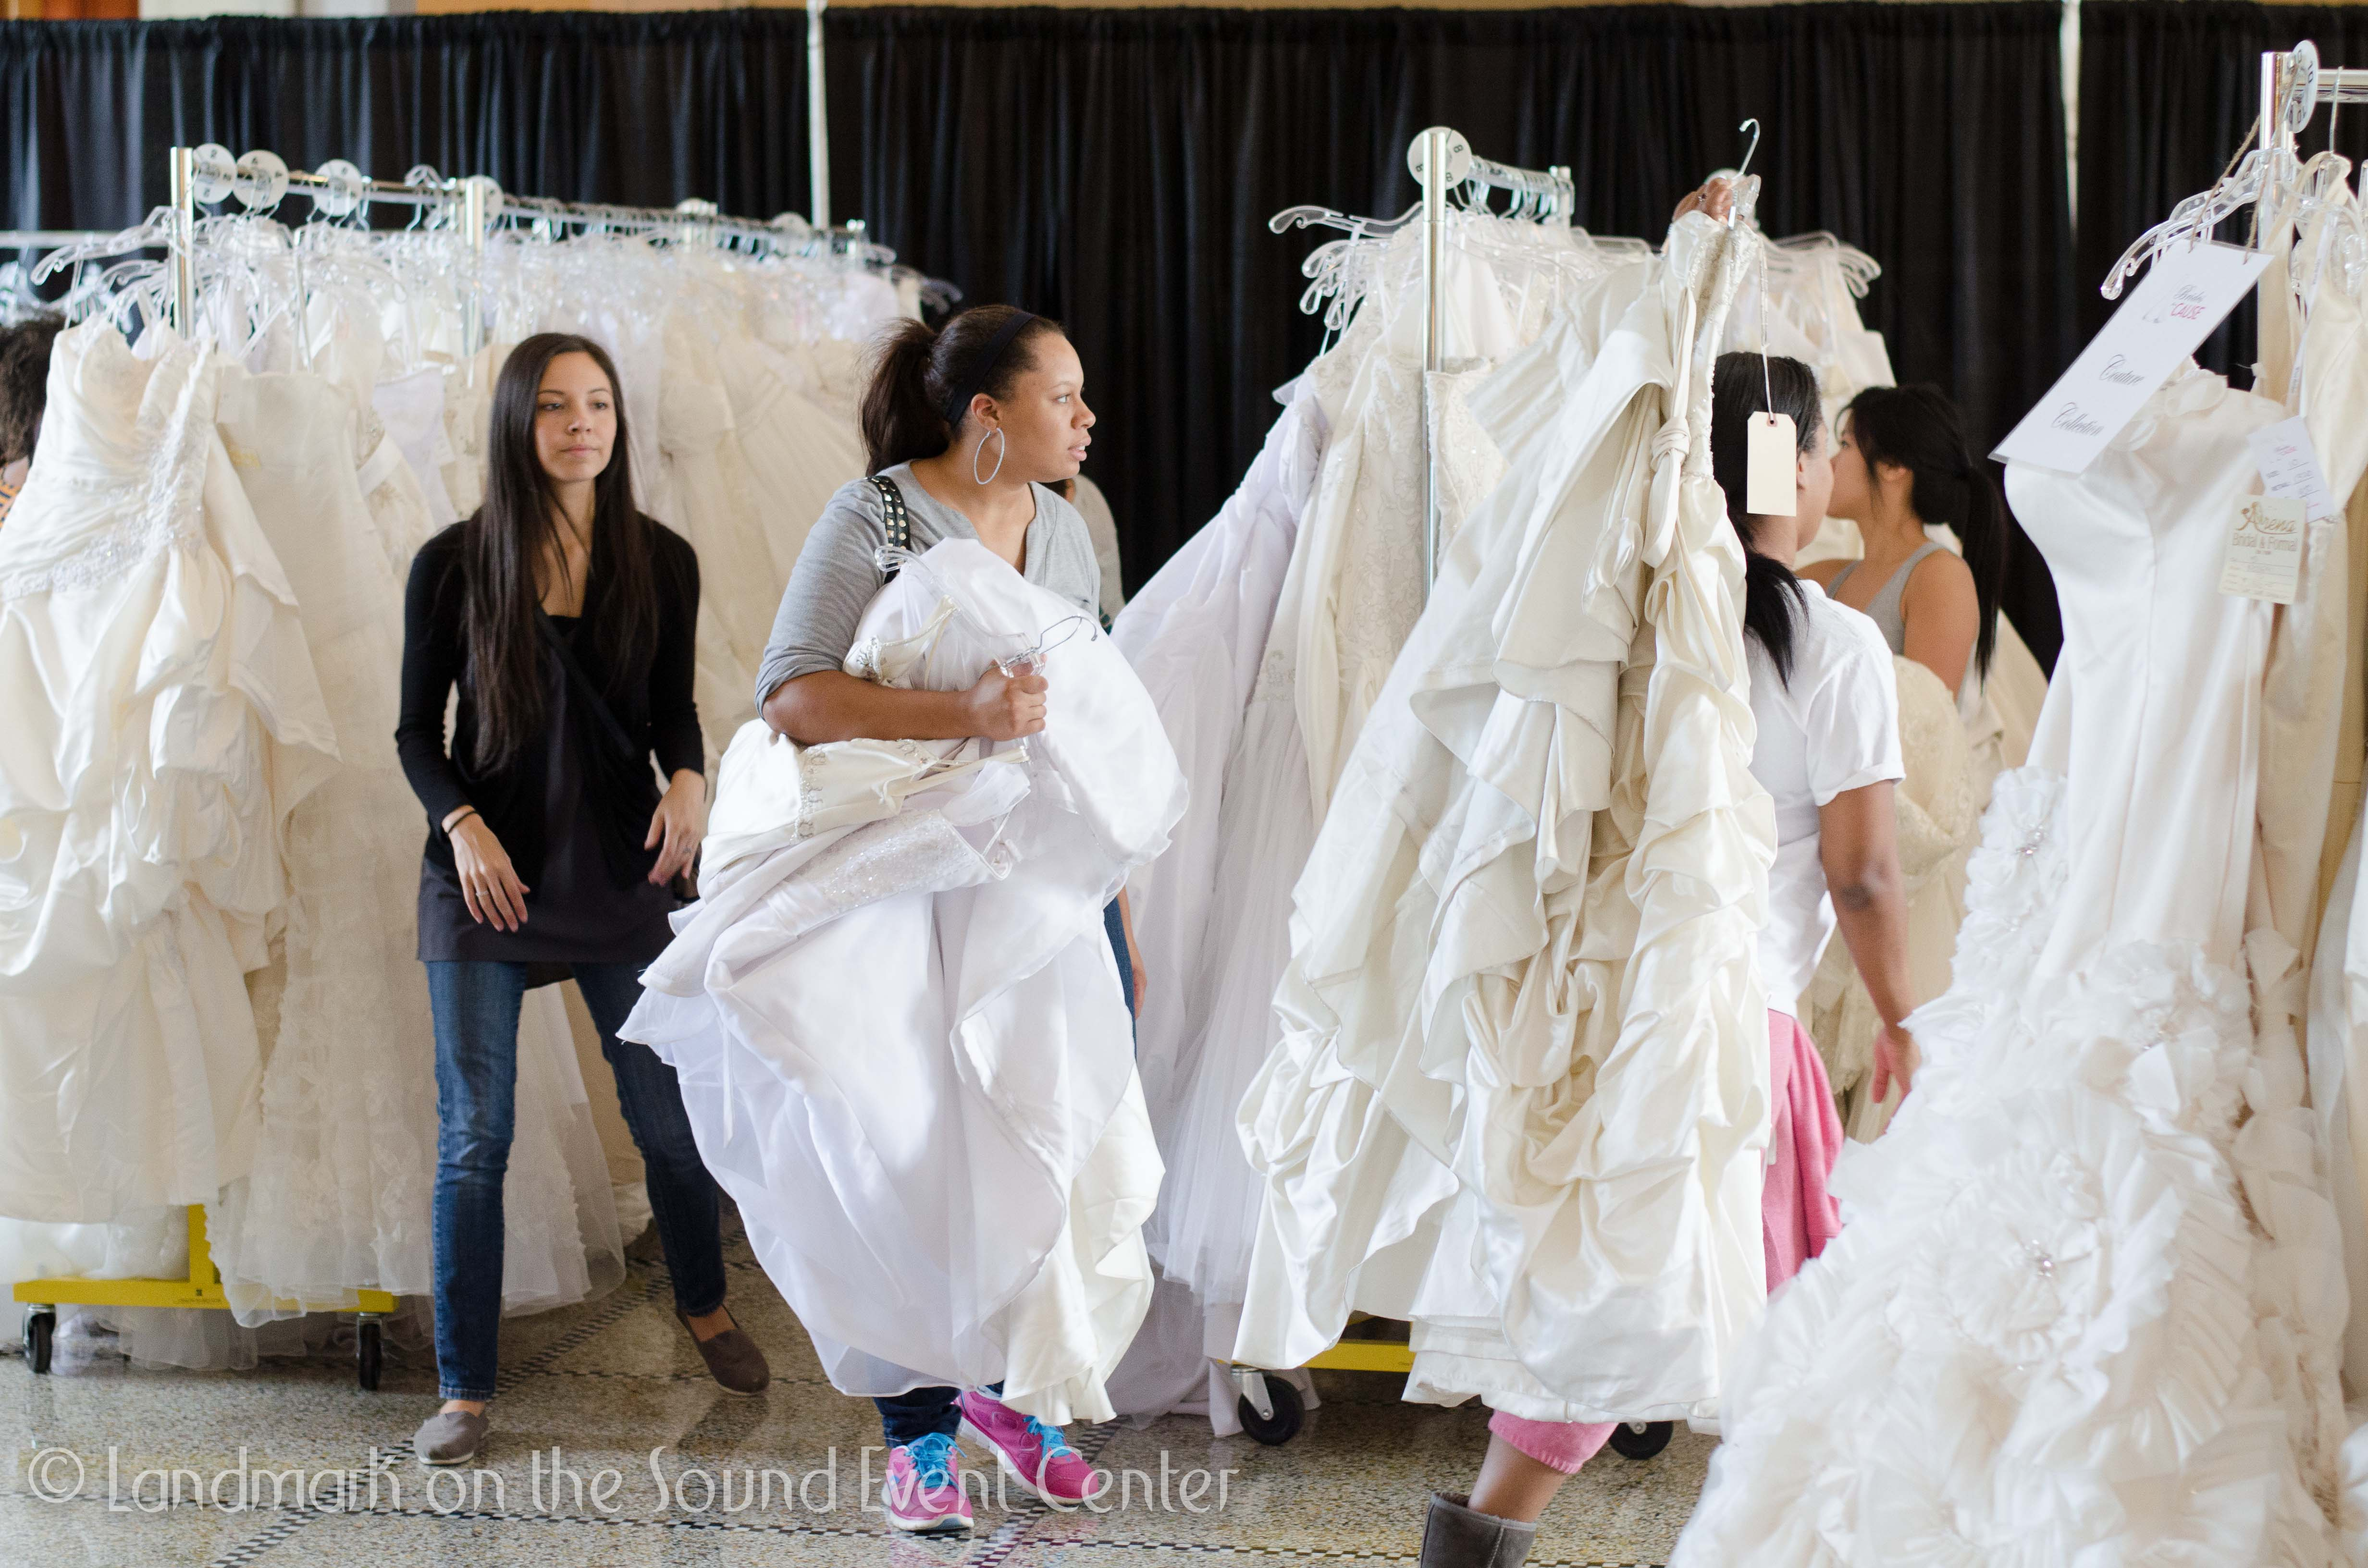 Wedding Gowns at Landmark Event Center Brides for a Cause Wedding ...